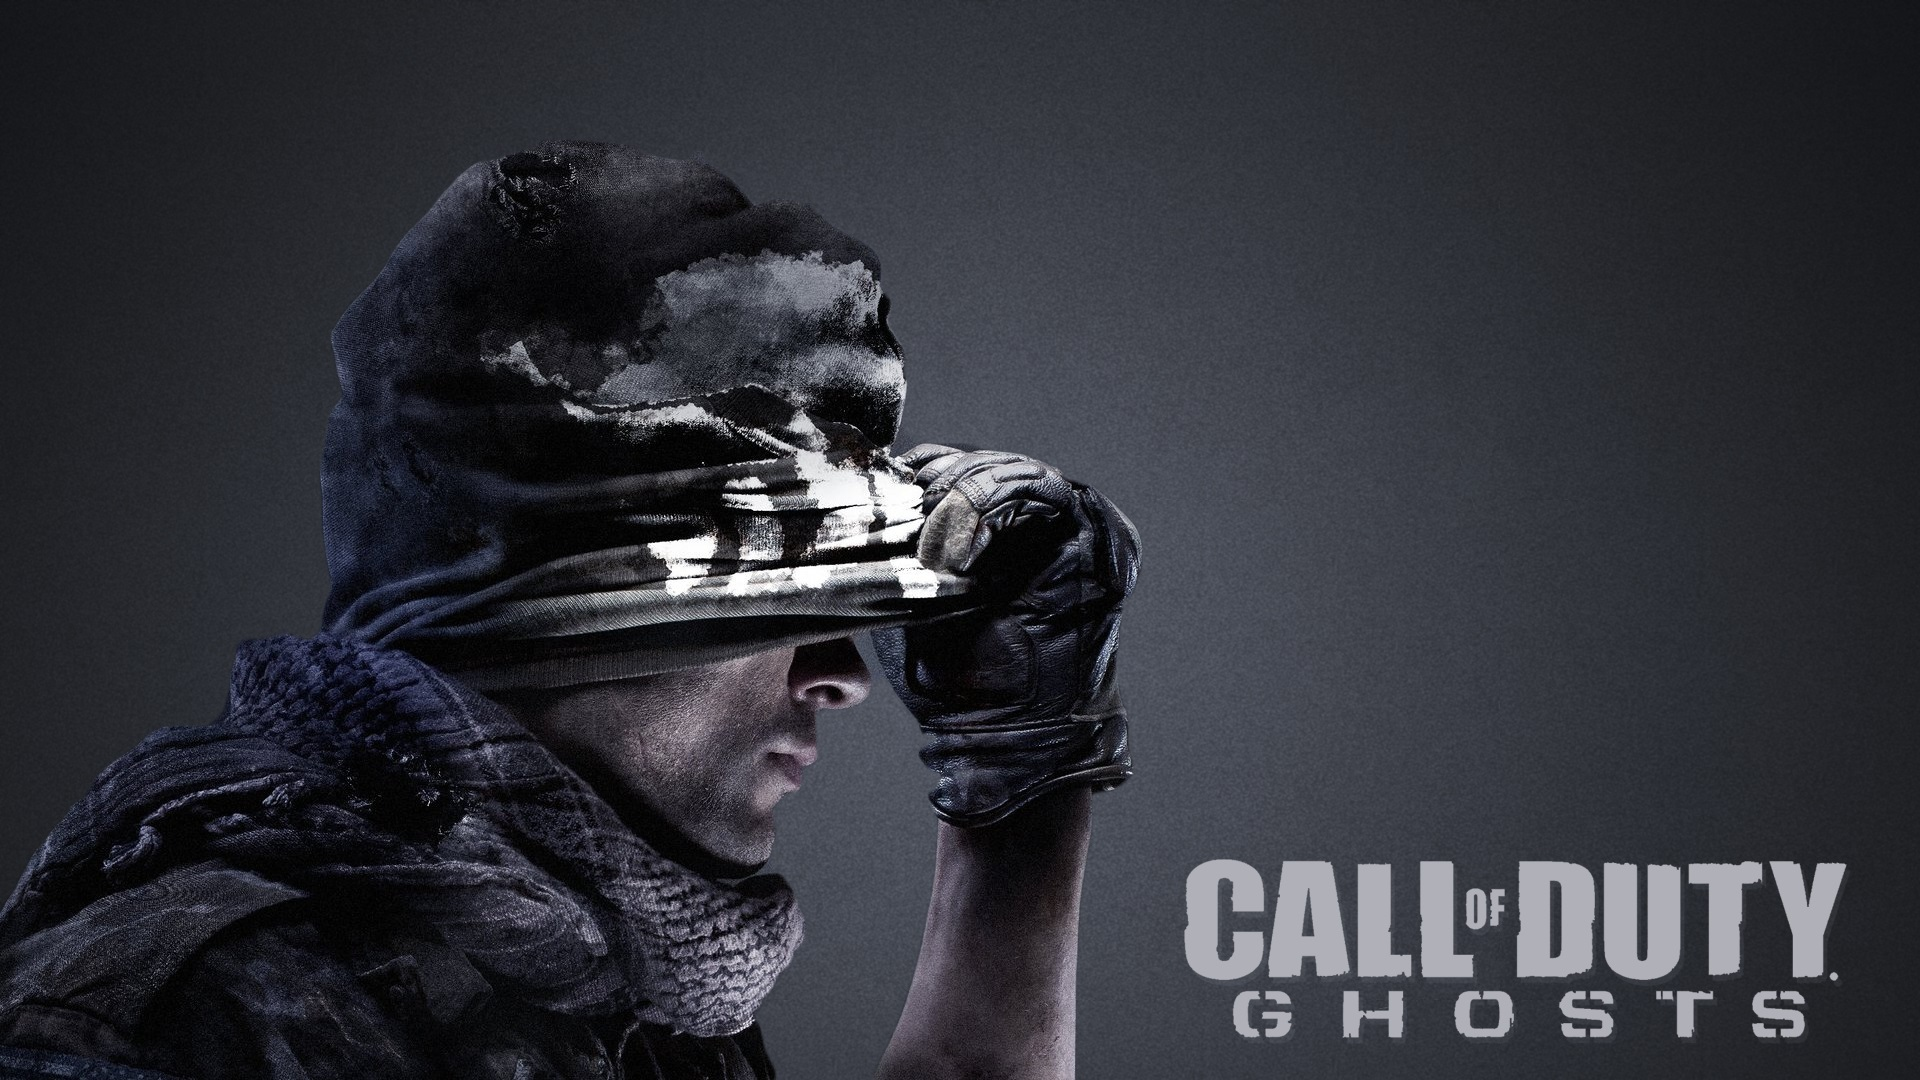 call of duty ghosts wallpaper 20776